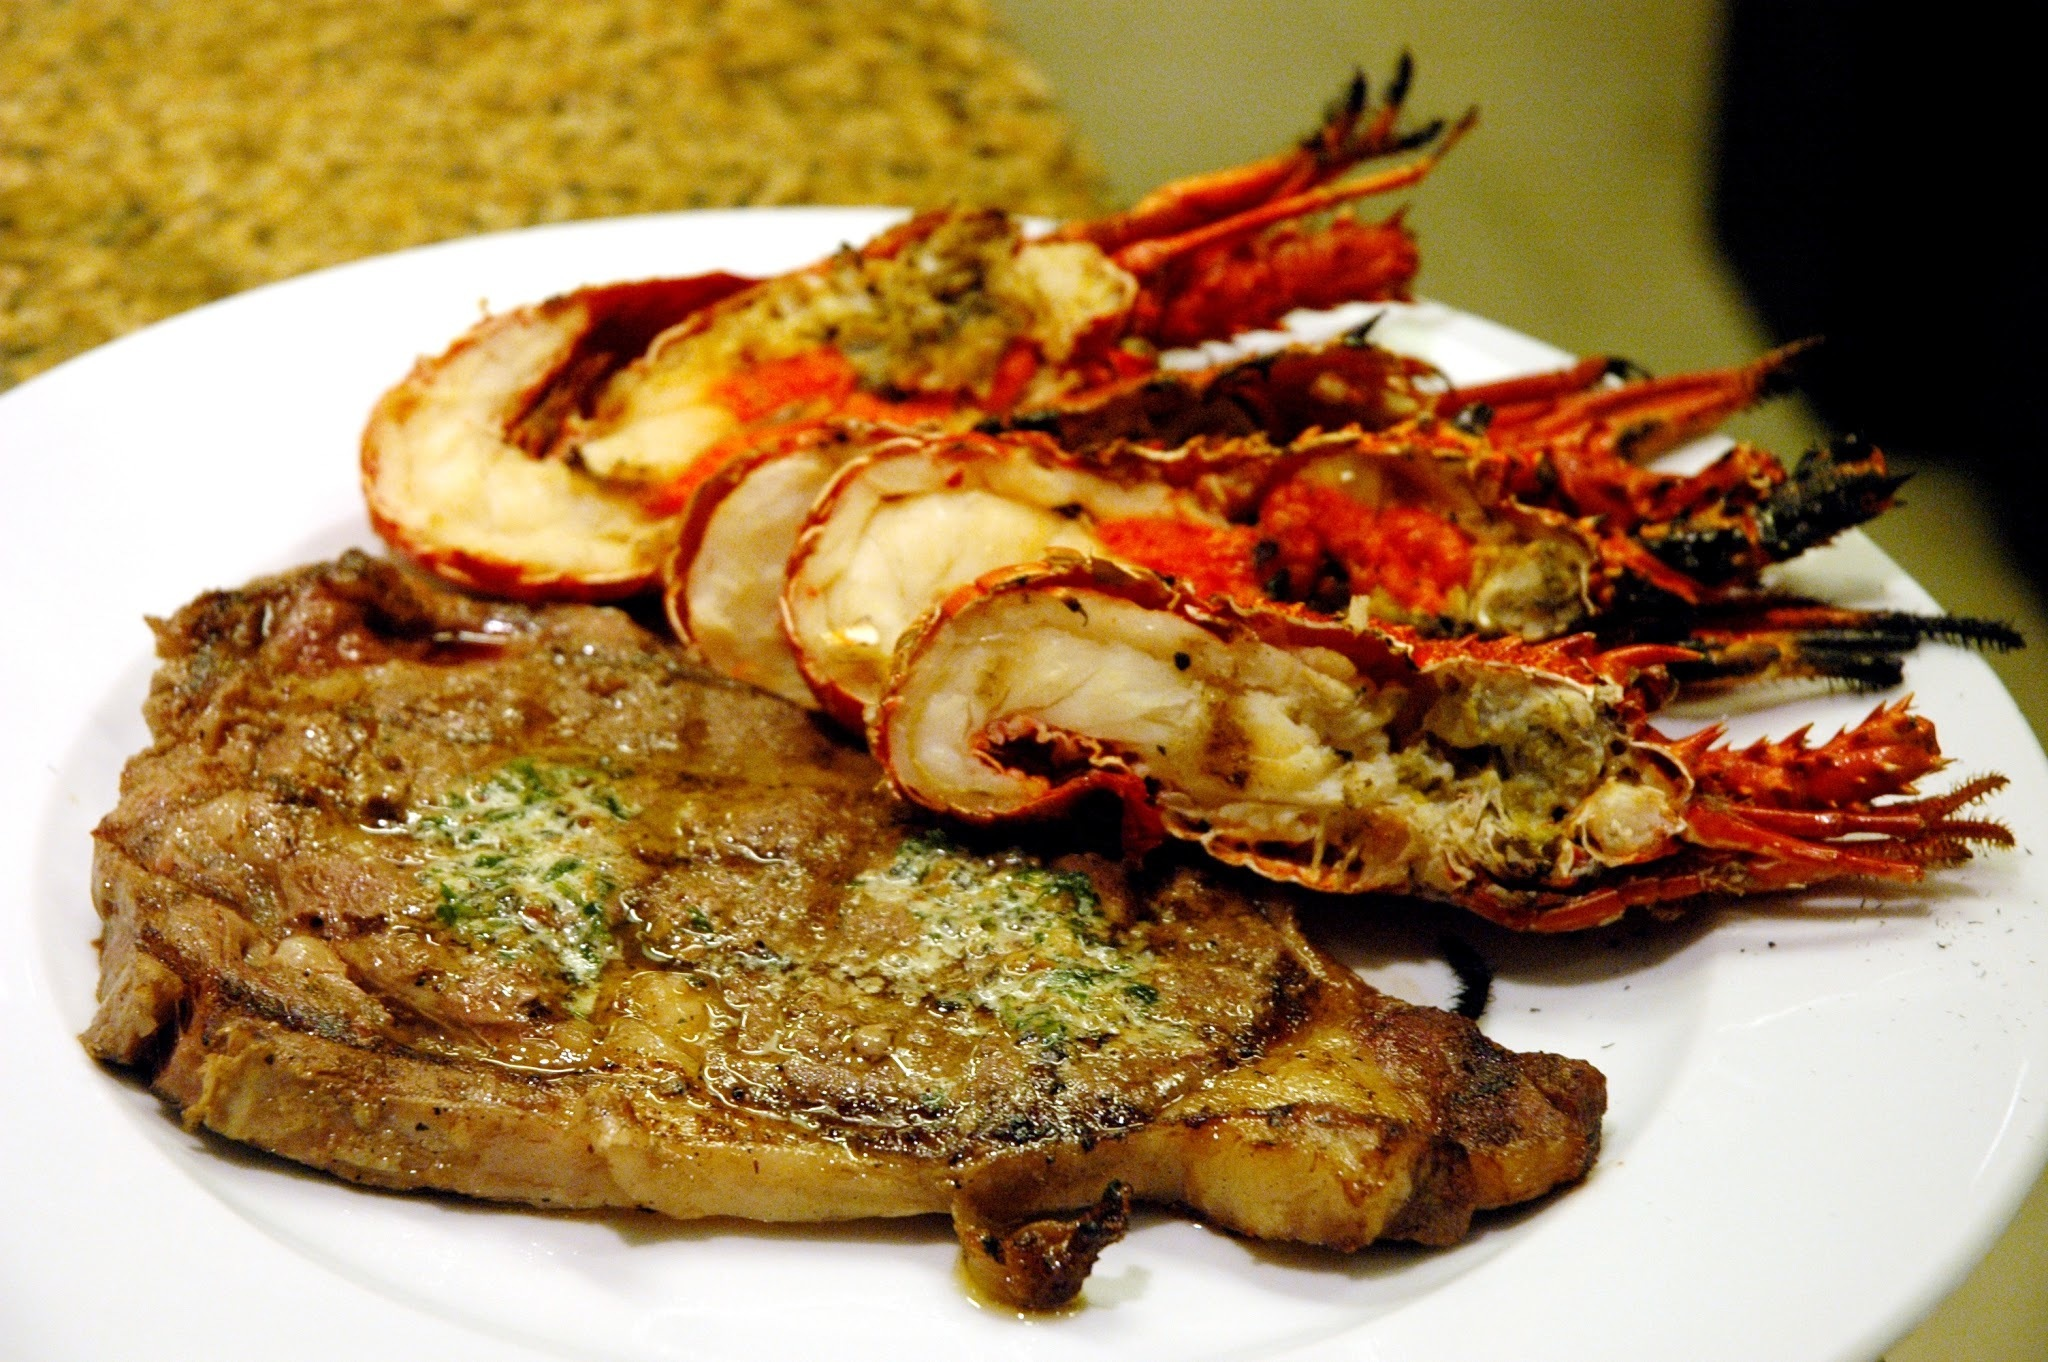 Surf's Up at The Hyatt's Market Cafe Seafood and Steak Buffet